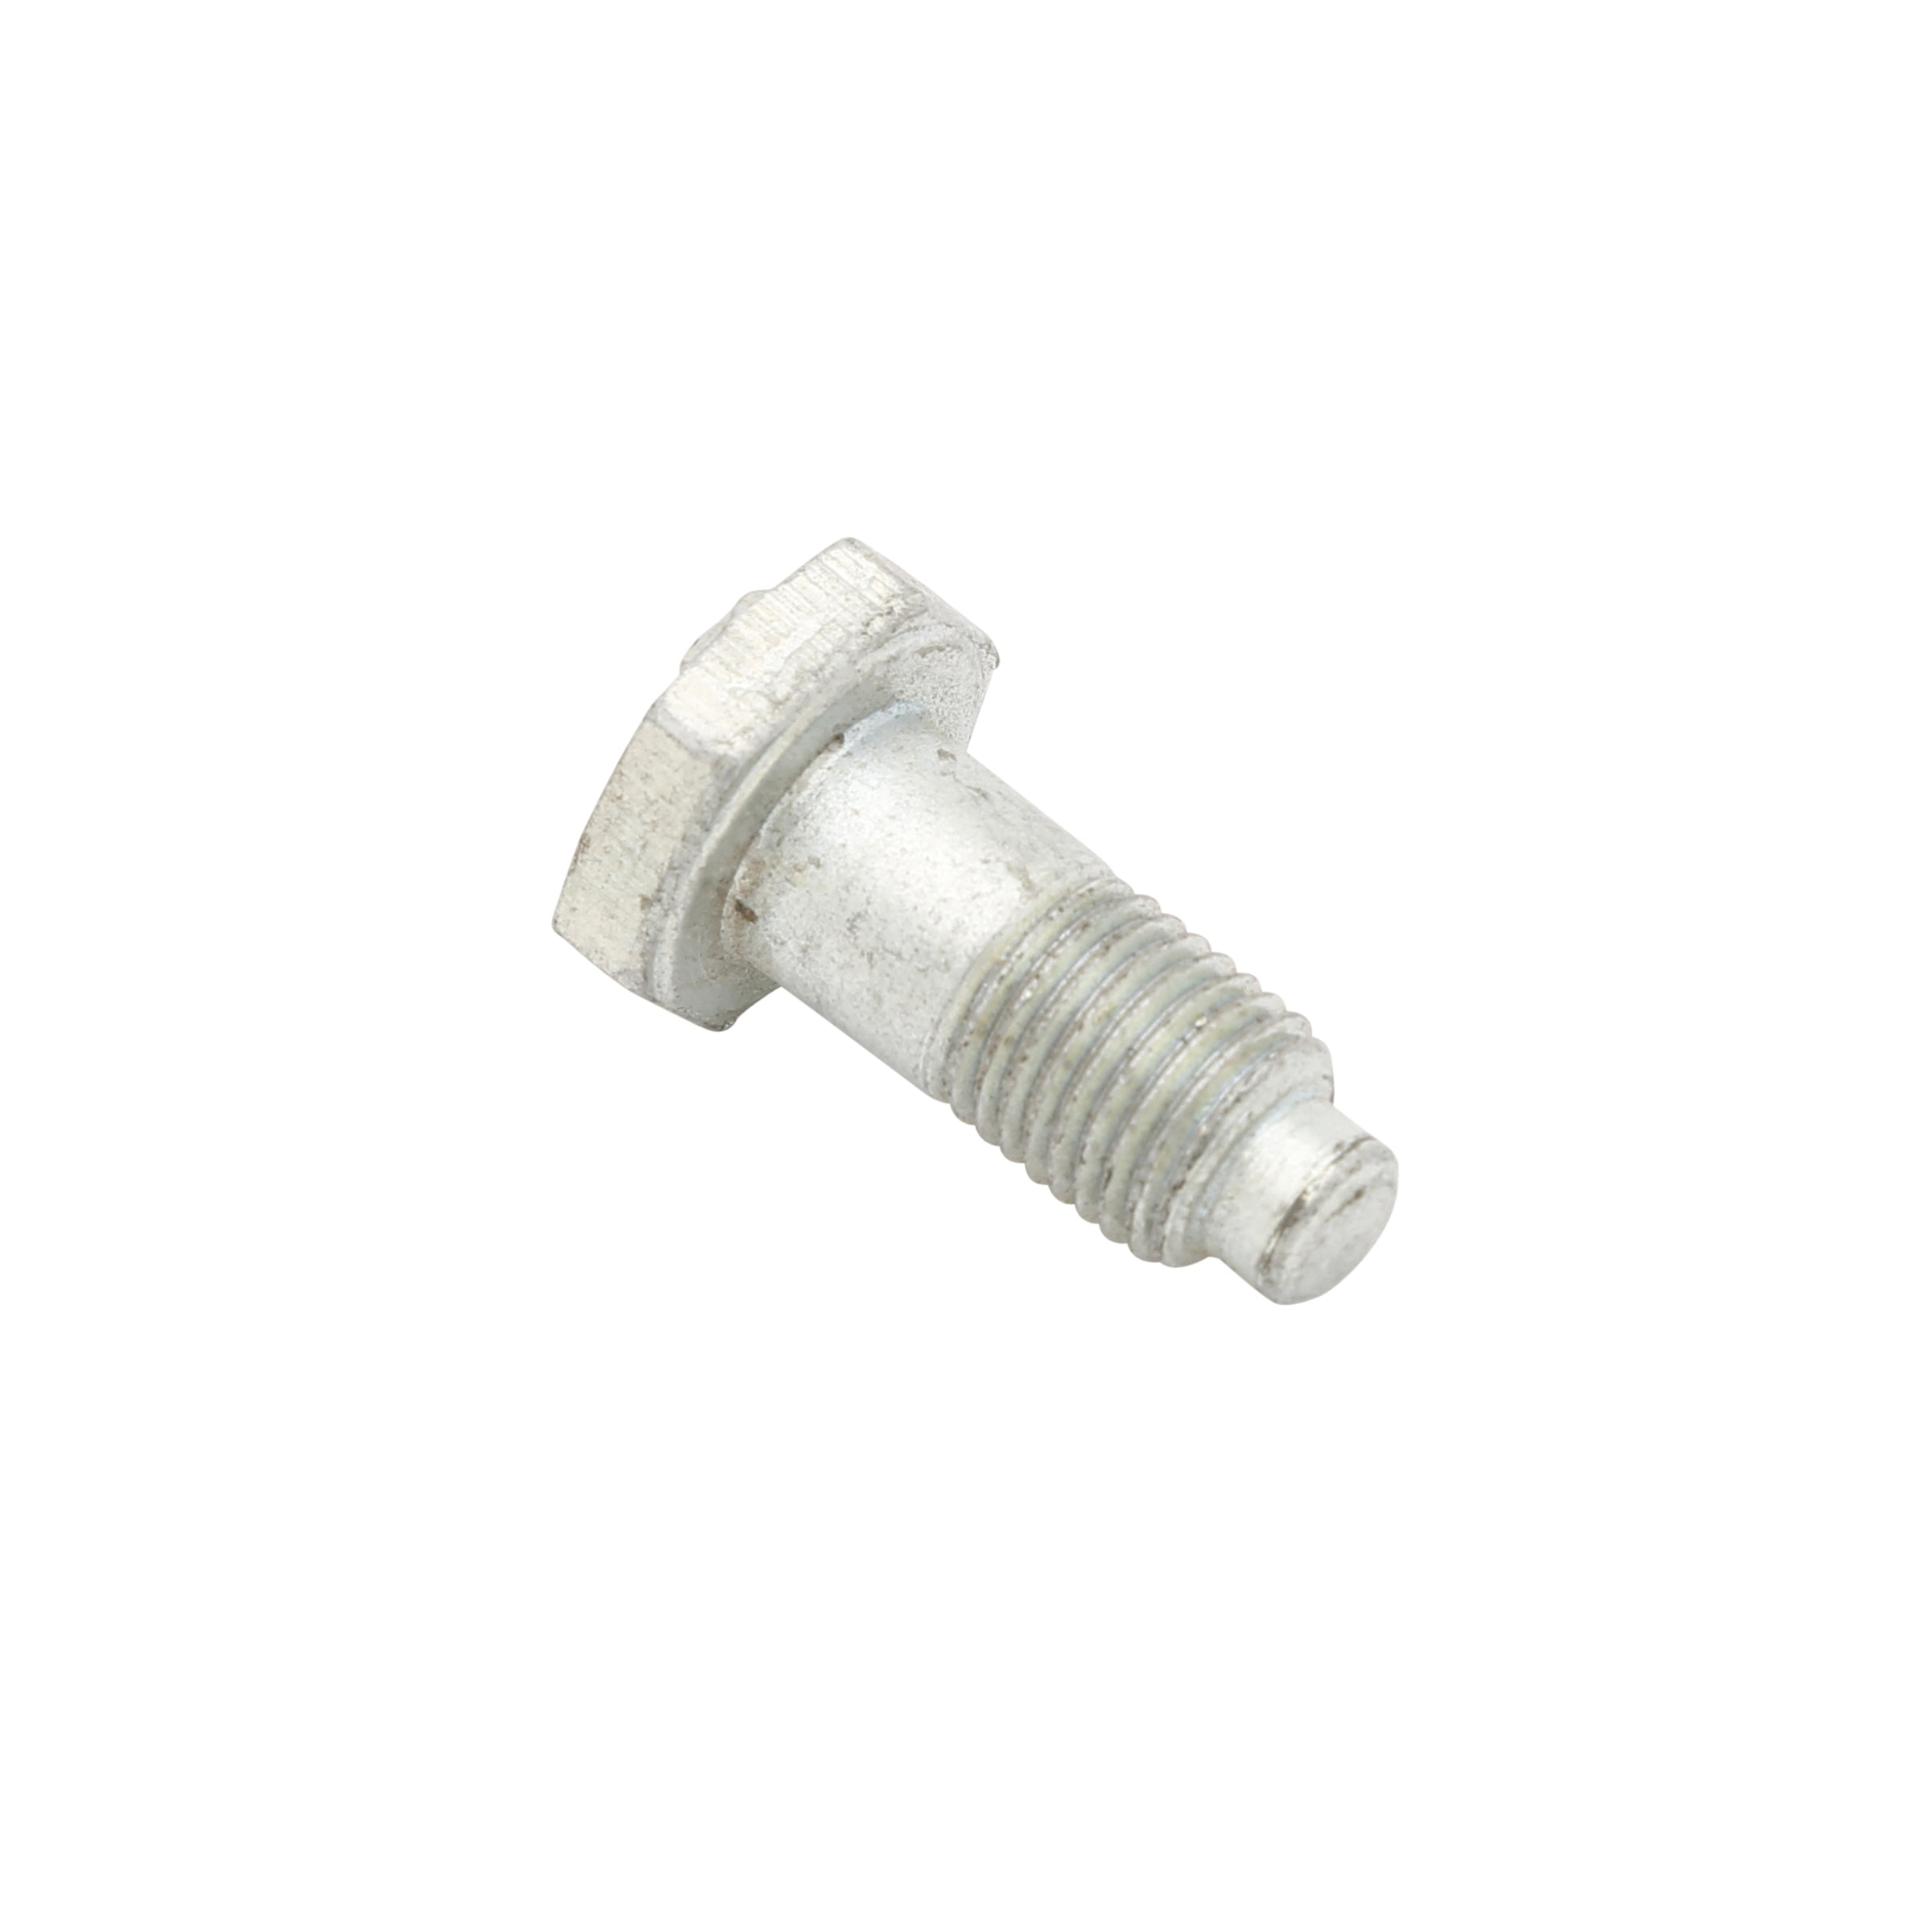 Starter Drive Head Screw (5/16 - With Tip) • 1928-48 Ford